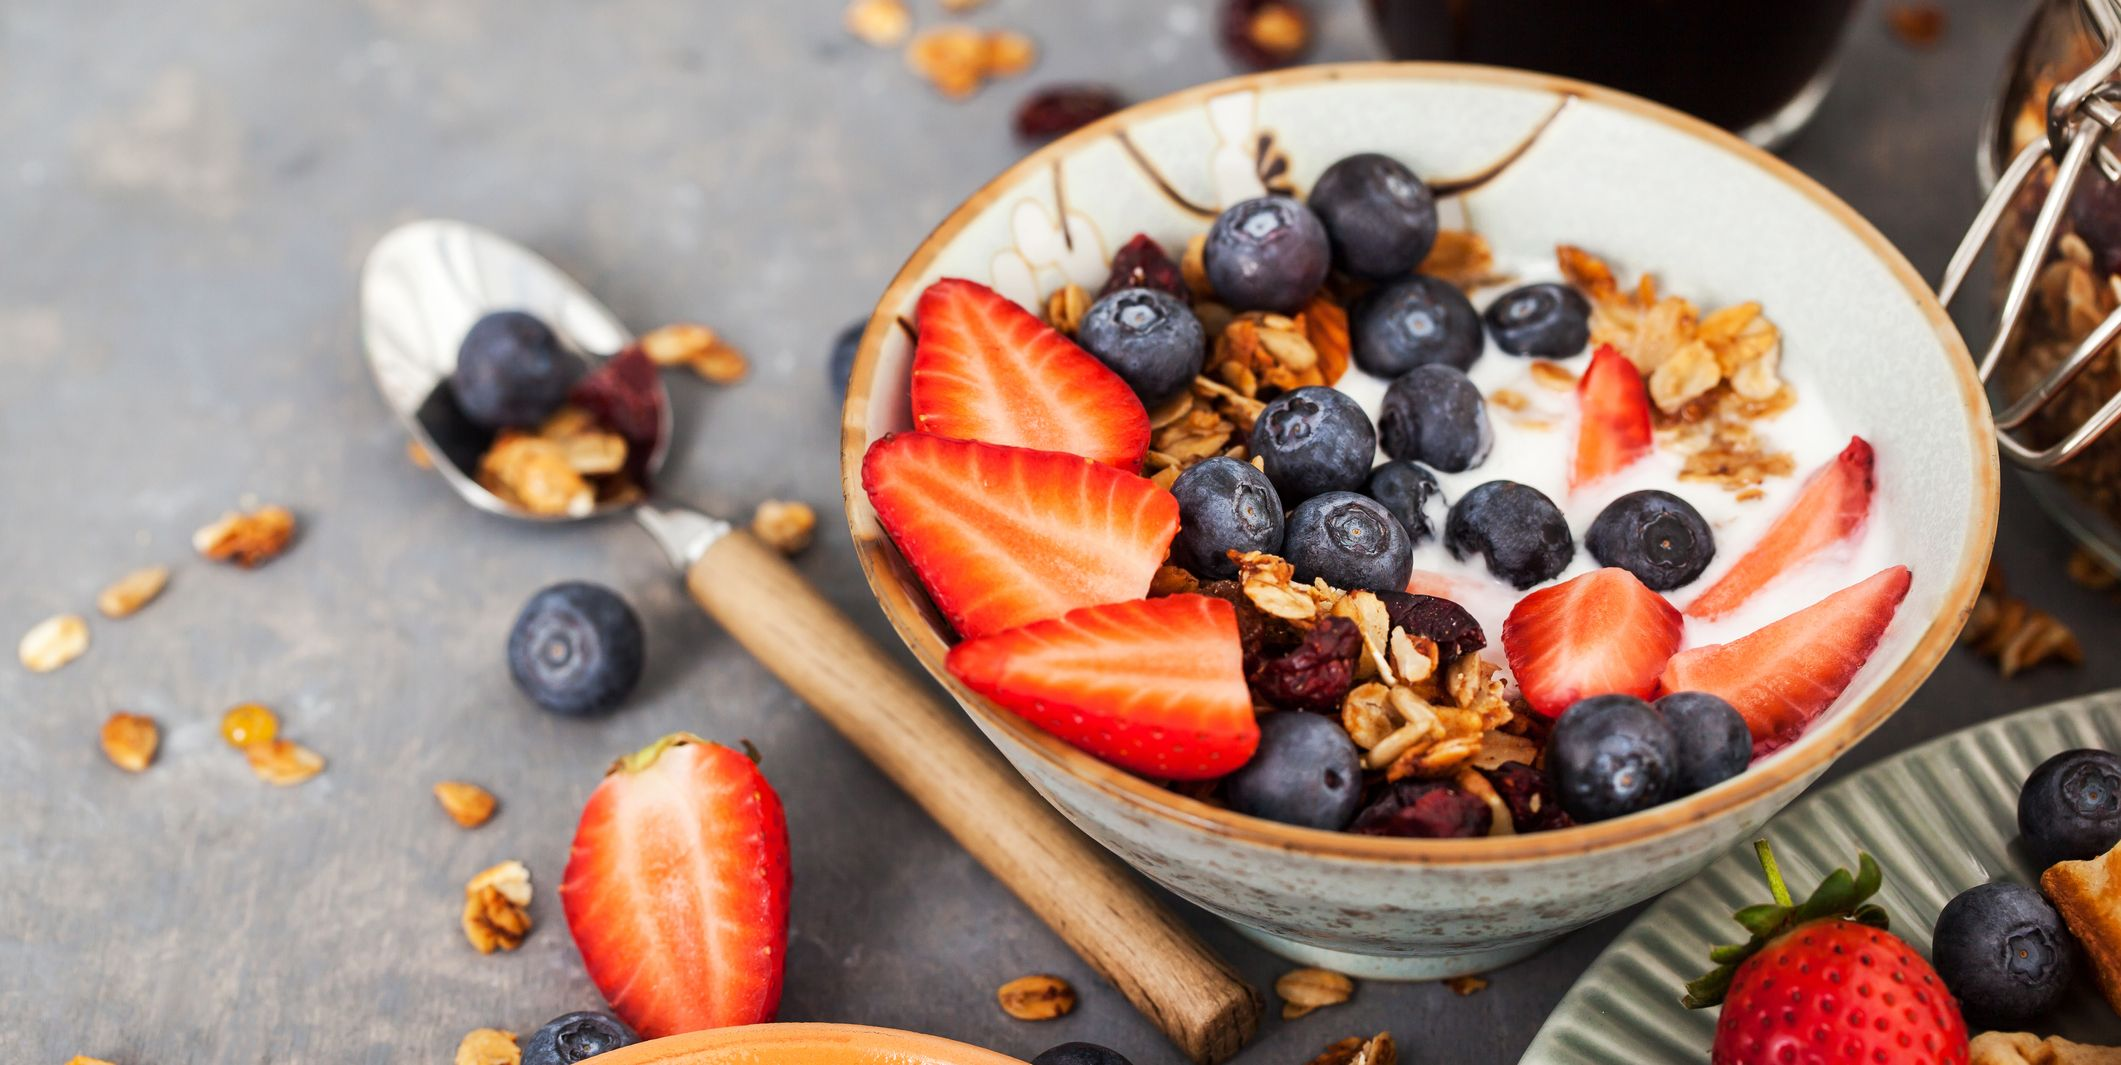 Healthy Snack Tips and Ideas from Nutritionist Joy Bauer